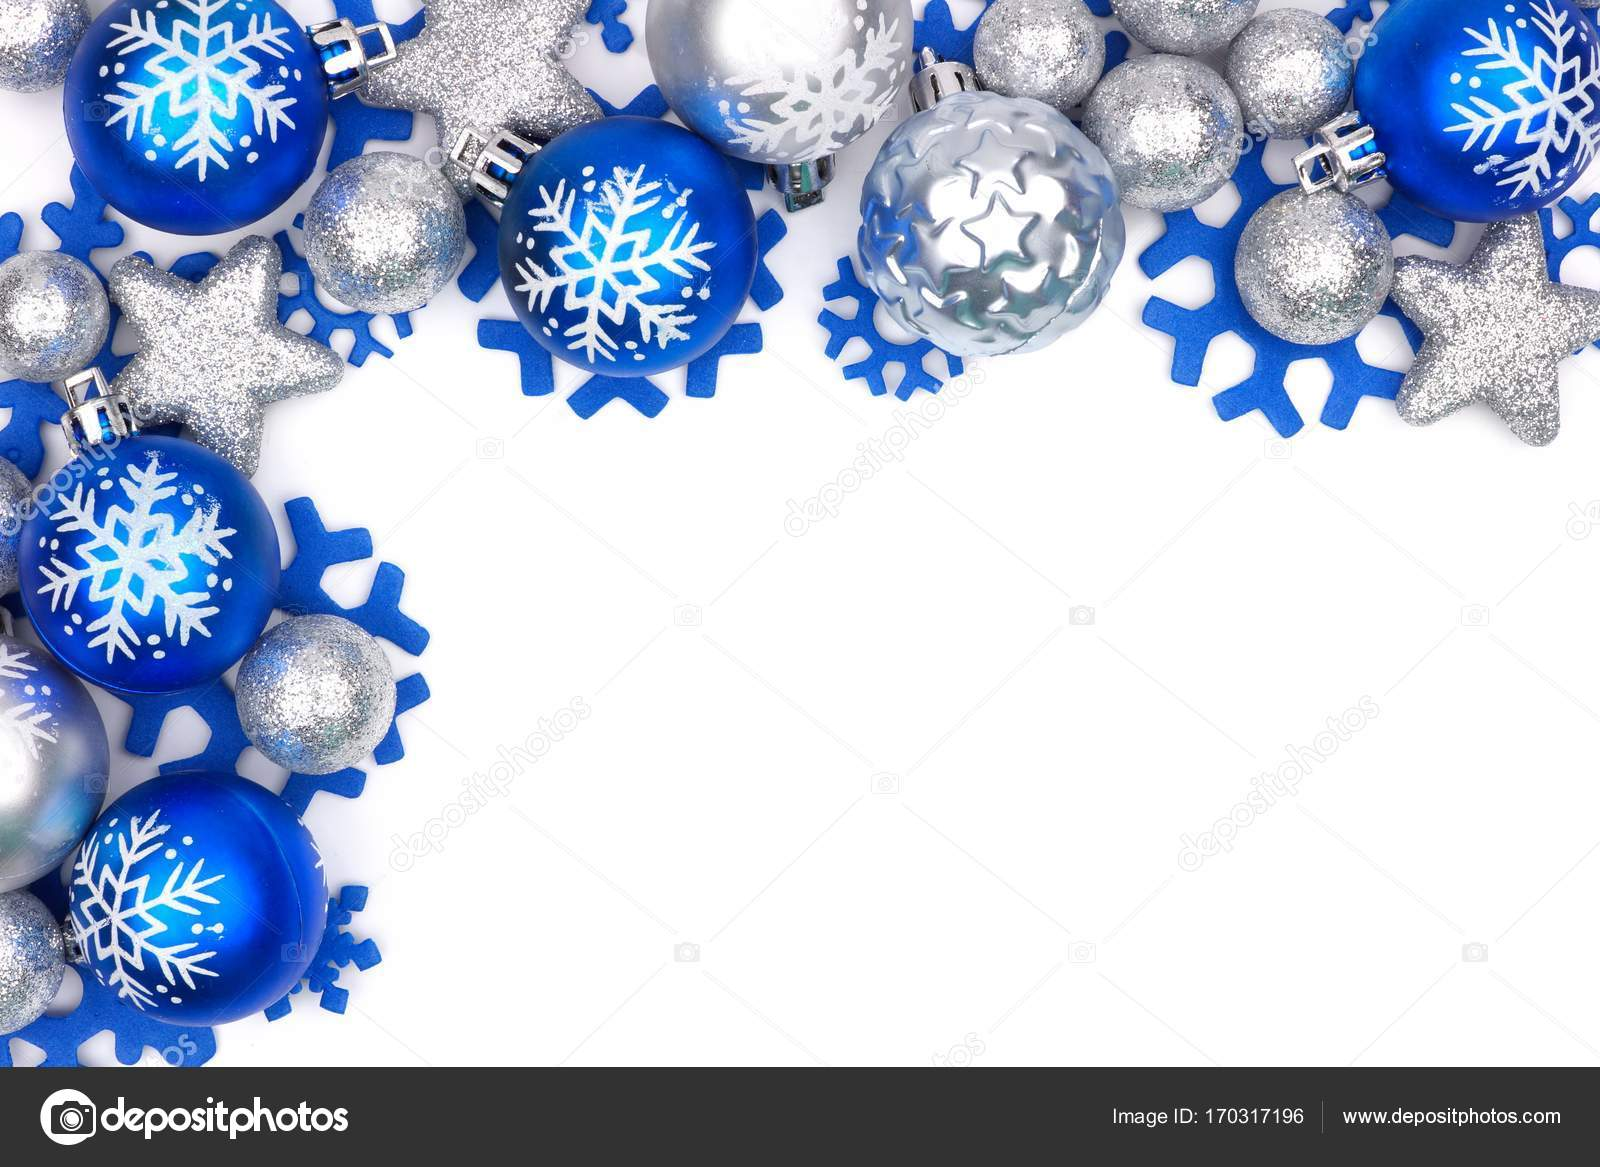 blue and silver christmas ornament corner border over white stock photo - Blue And Silver Christmas Ornaments